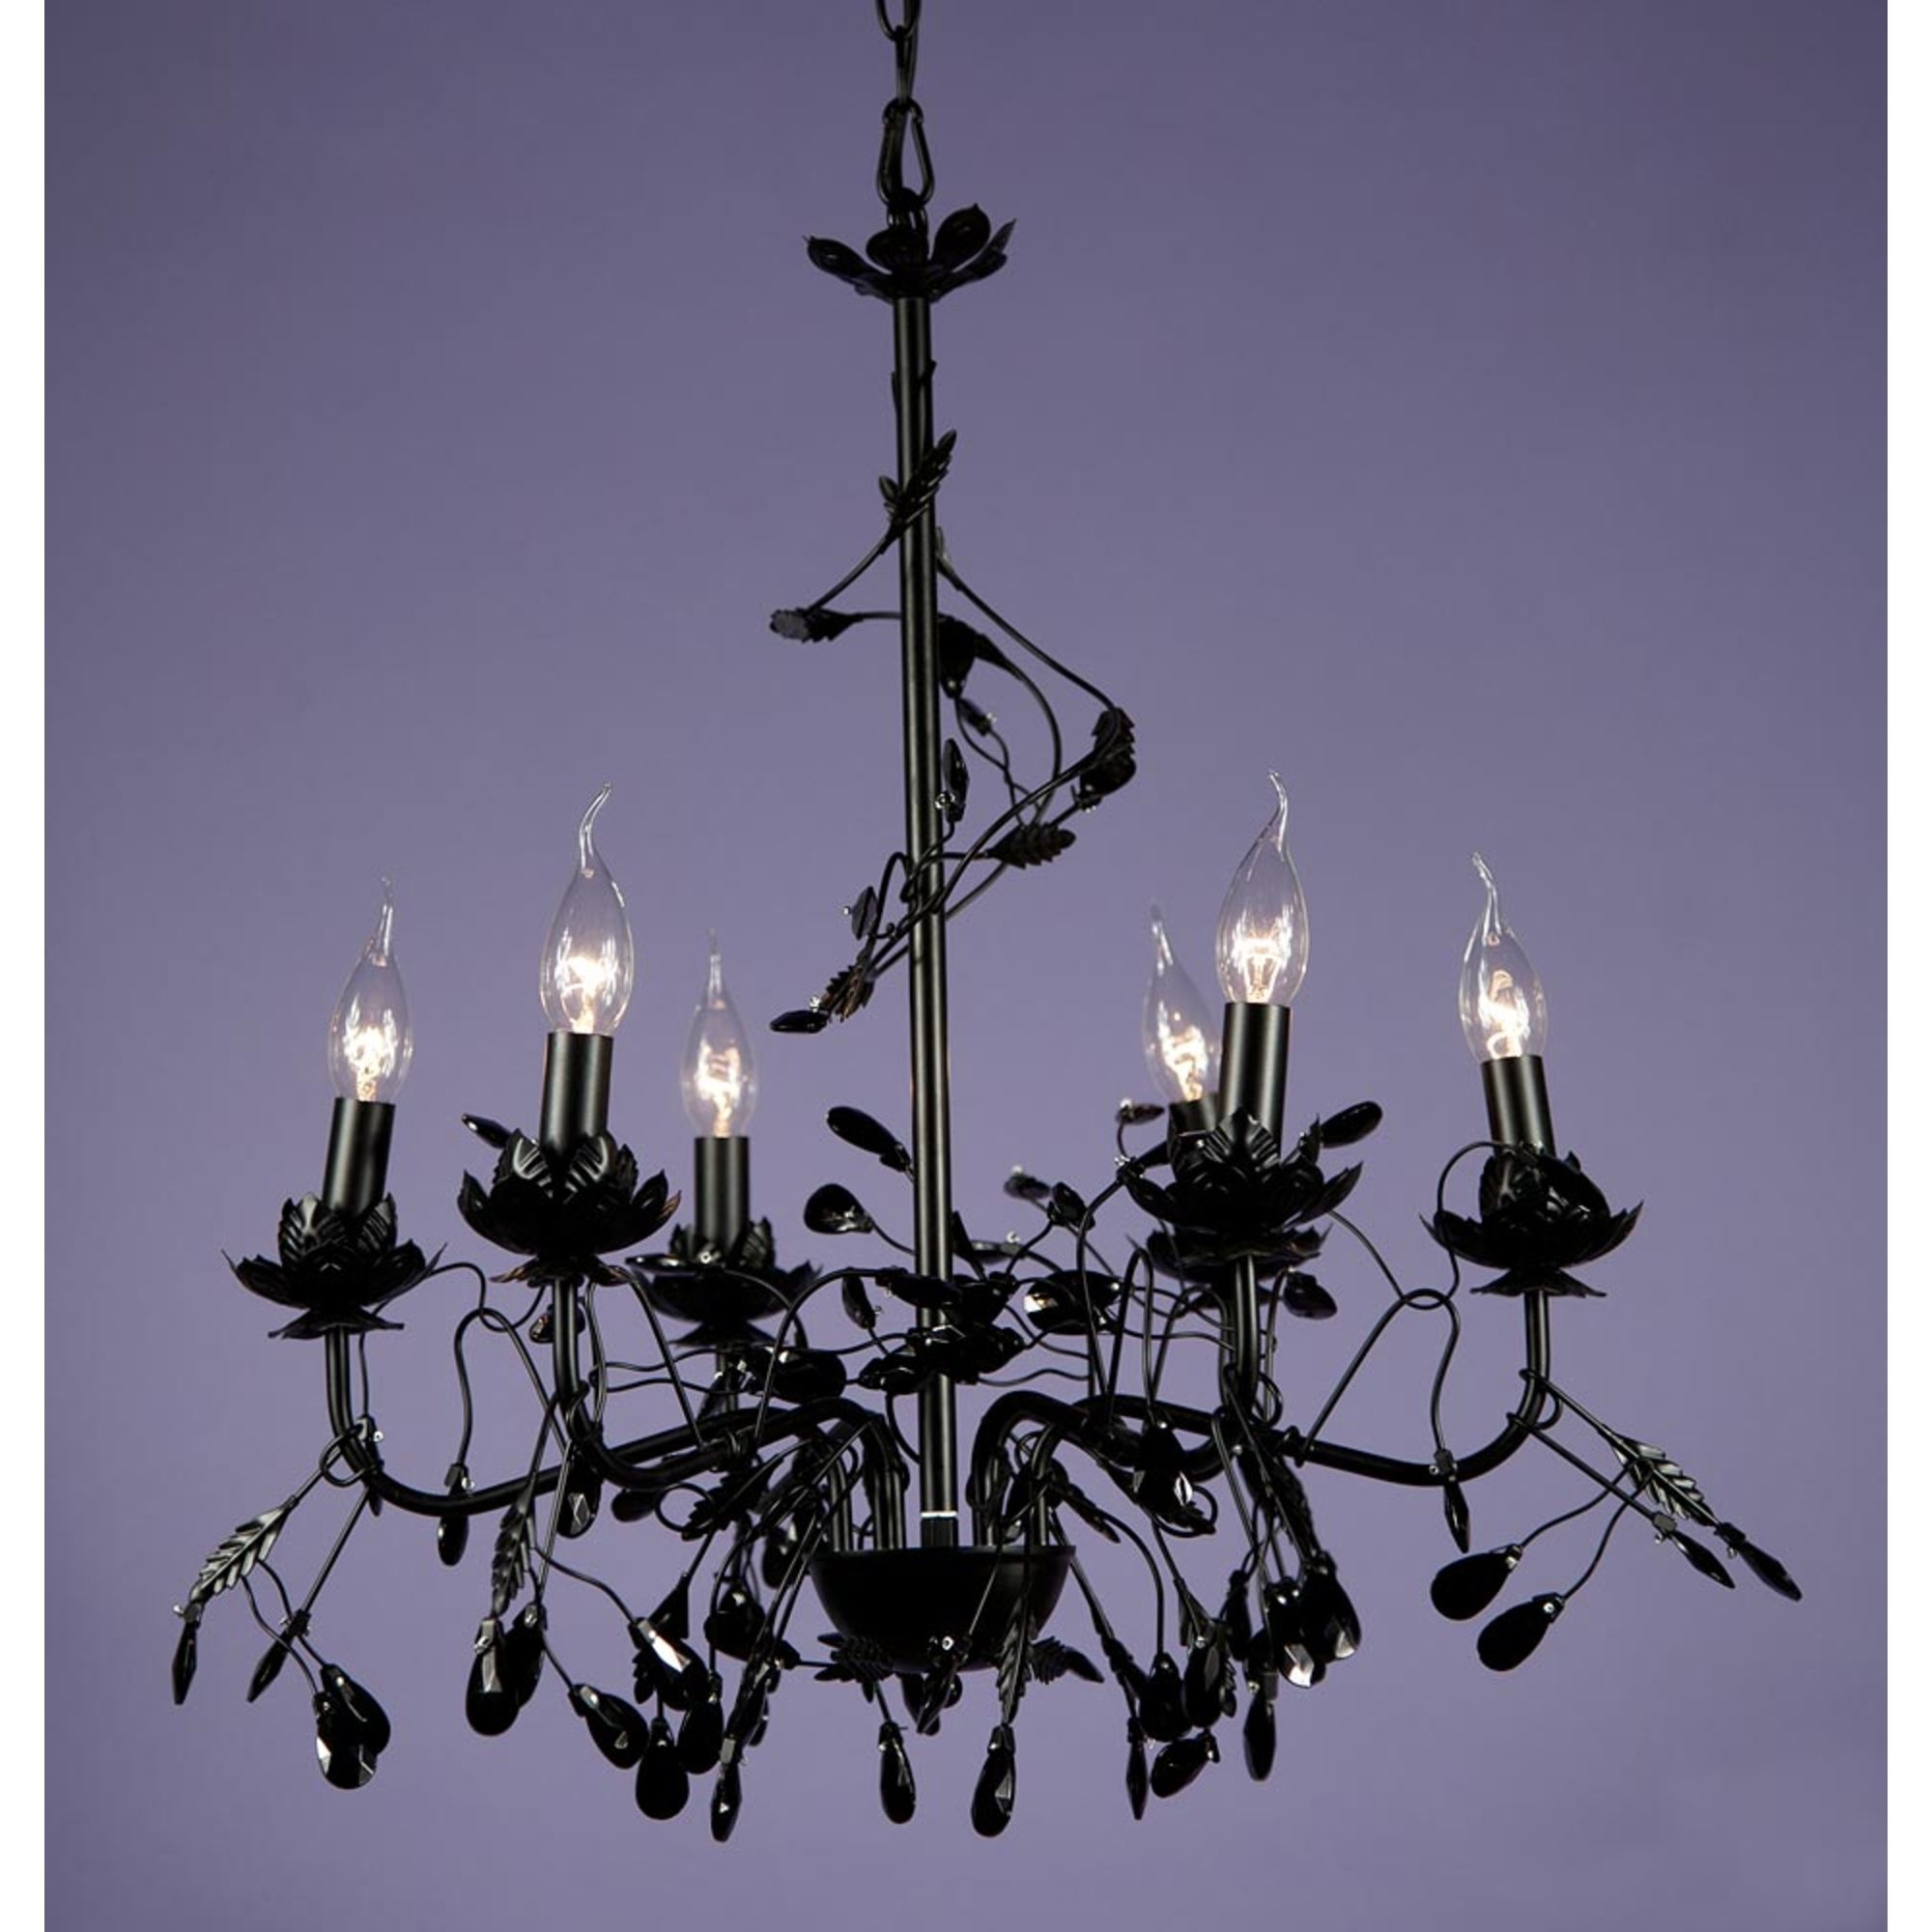 Floral 6 Light Chandelier - Black